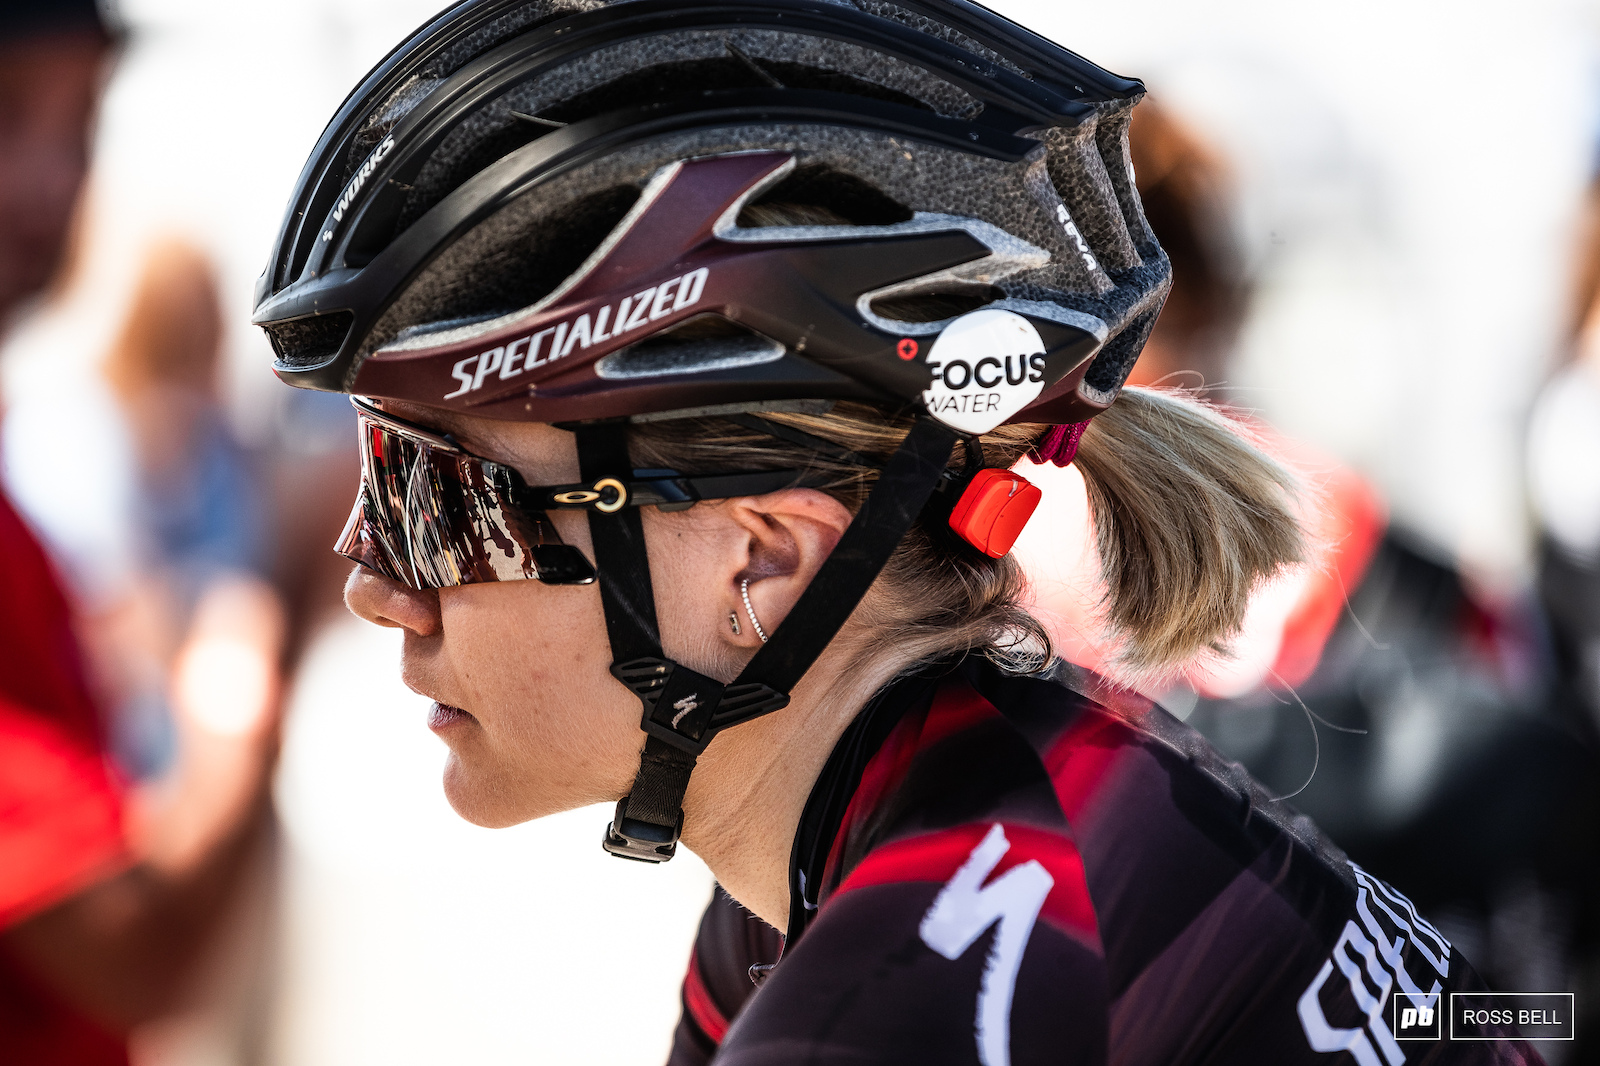 The short track World Champ Sina Frei looking to cap a strong season with another good race.